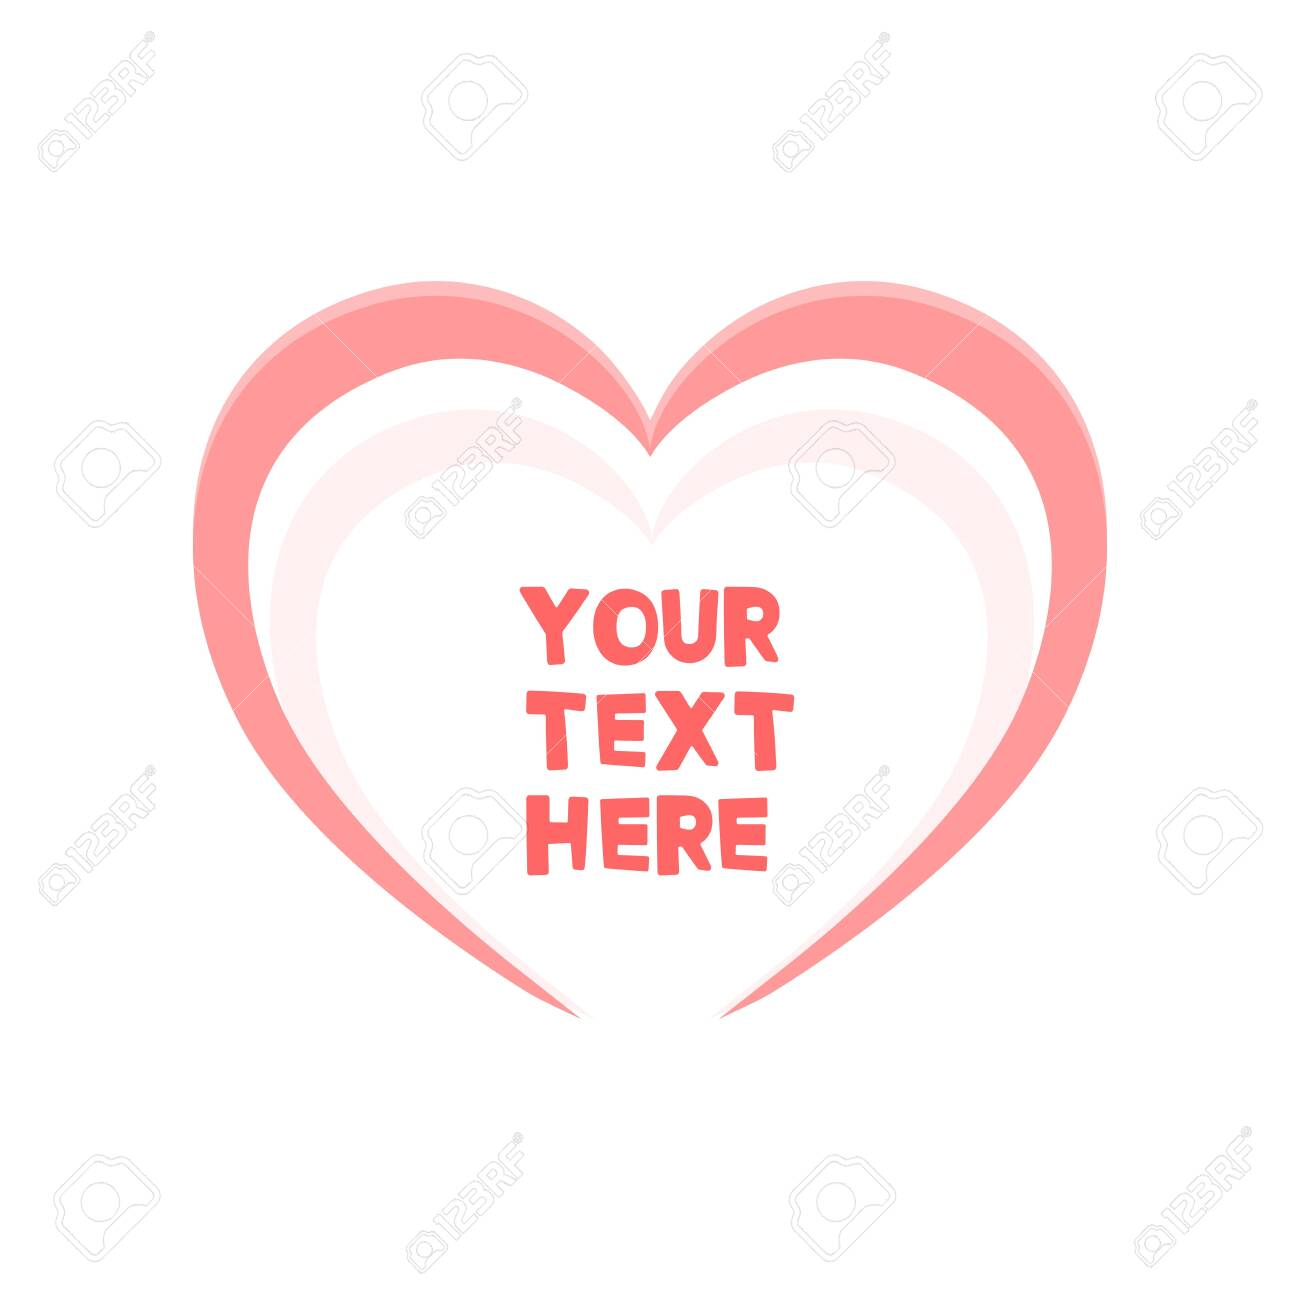 Cute heart frame for your text. Vector illustration - 143742185